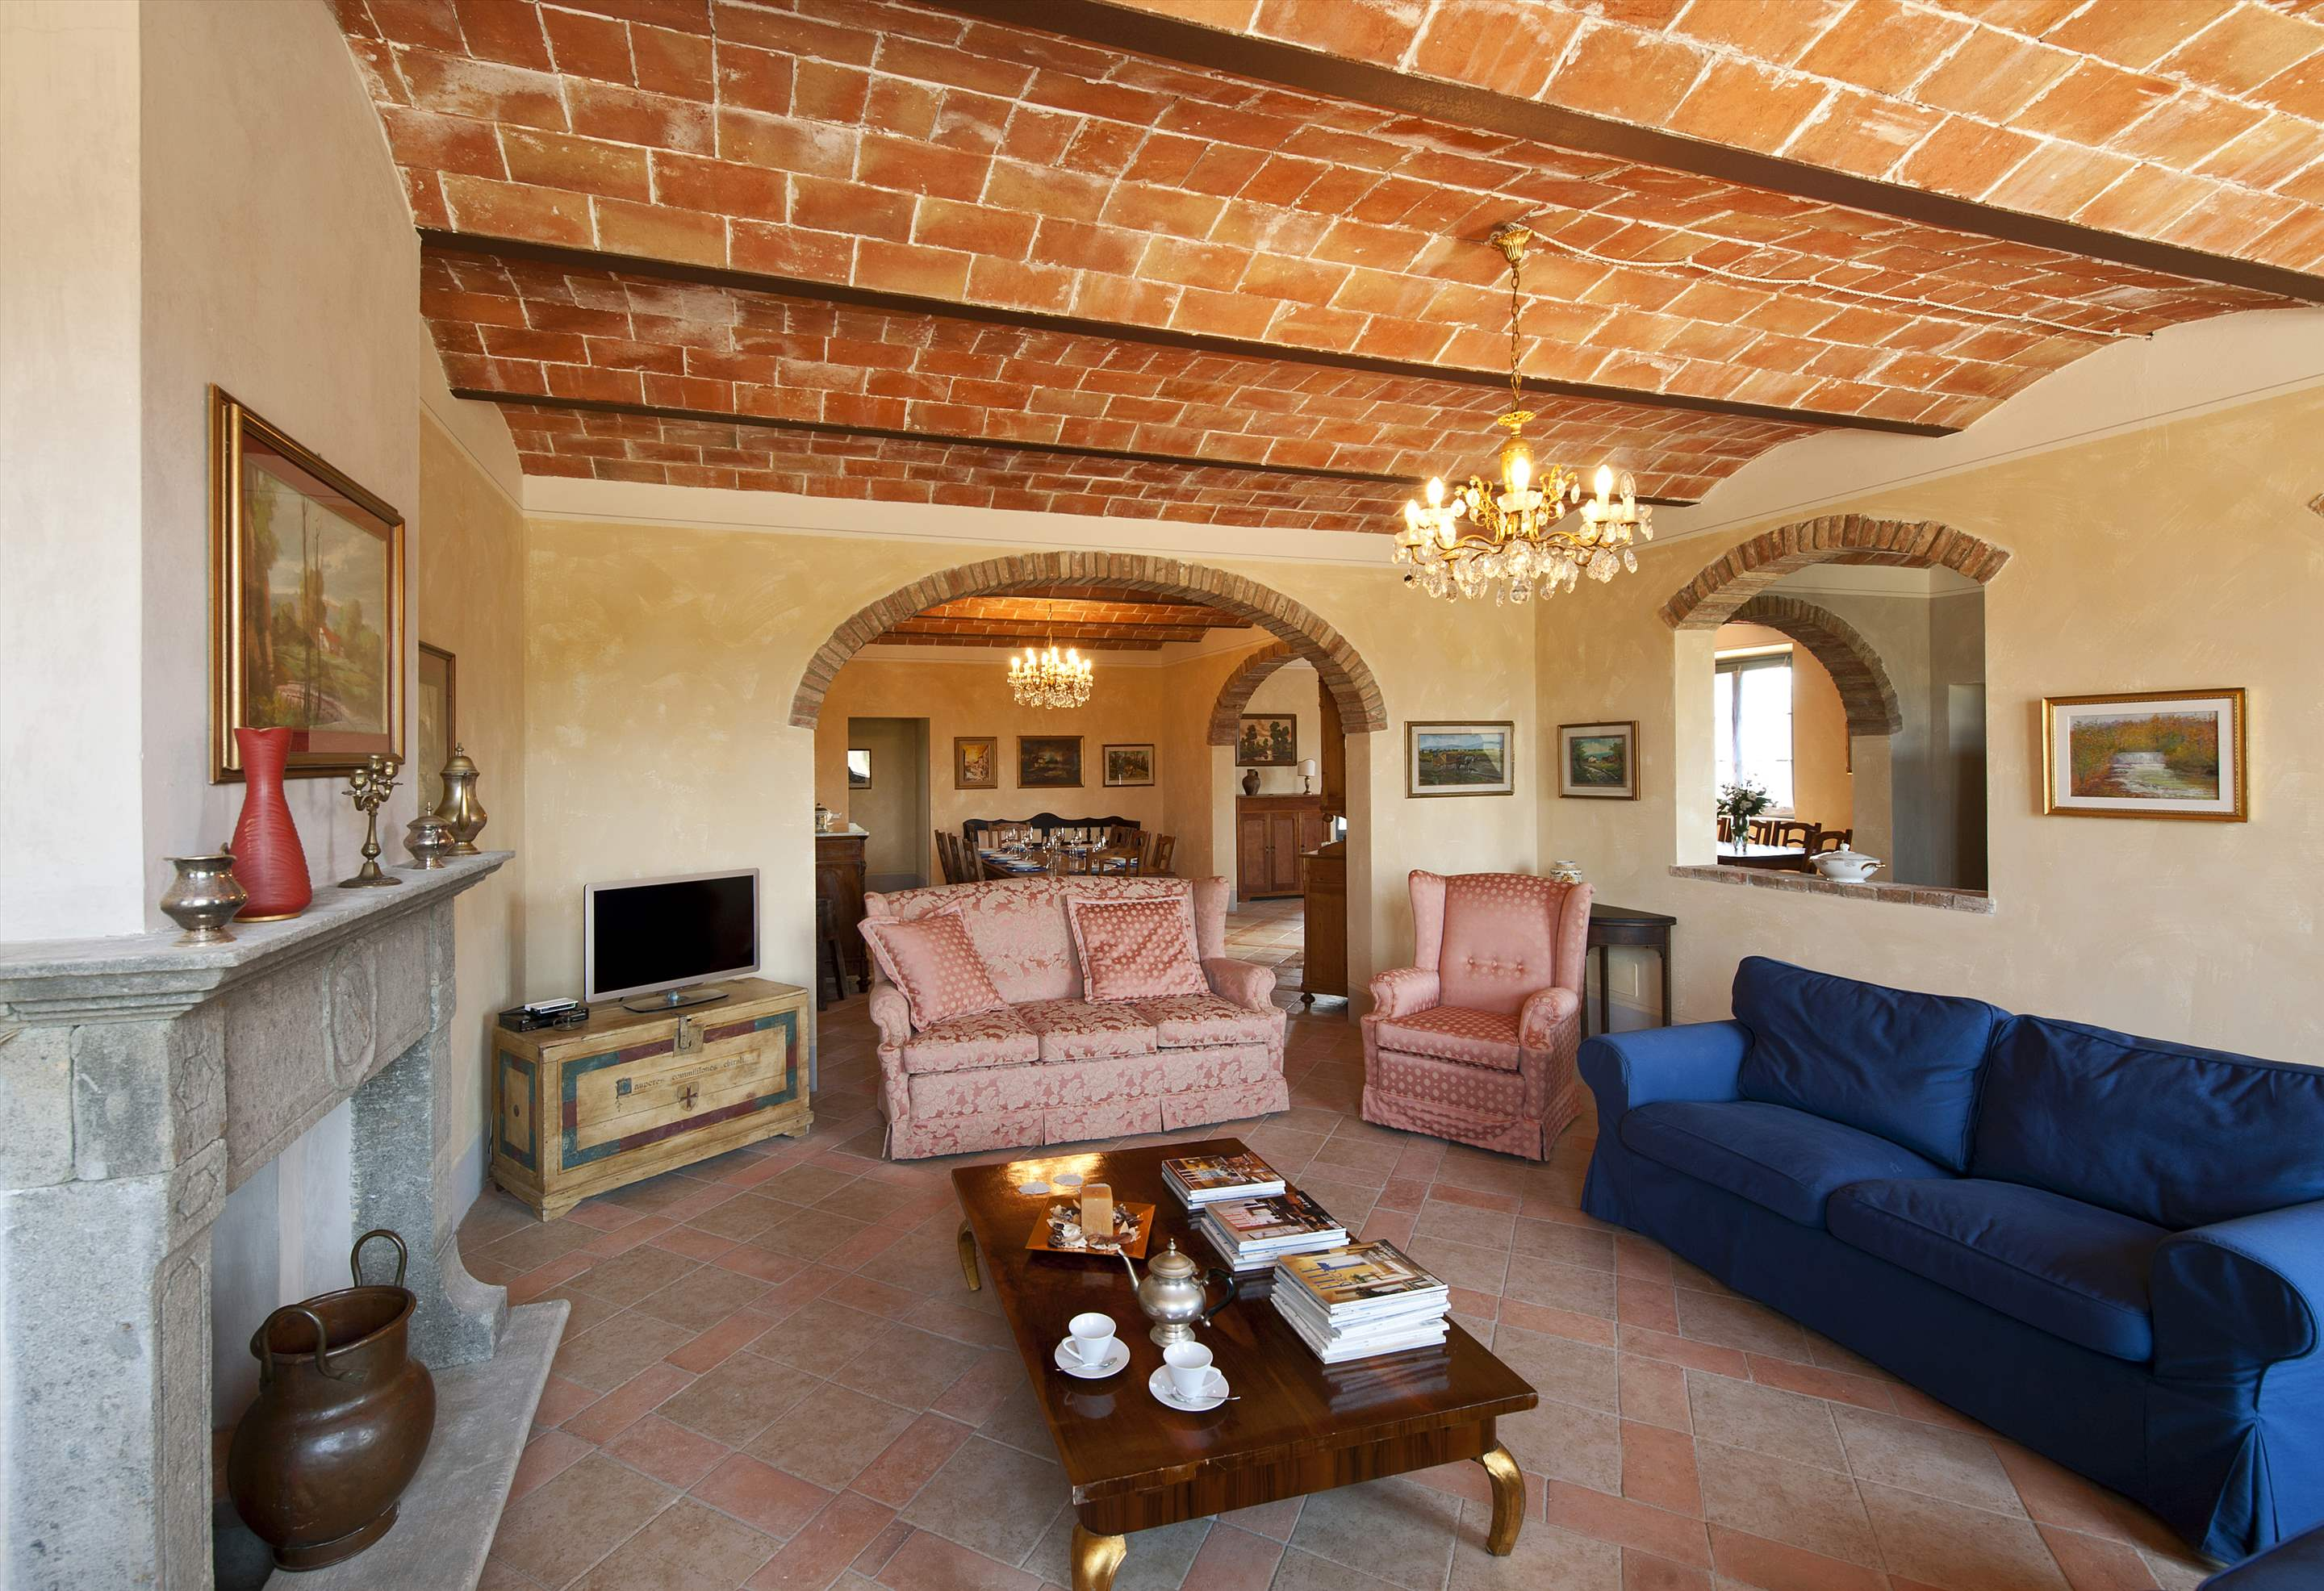 Podere Di Collina, First Floor, 4 bedroom villa in Tuscany Coast, Tuscany Photo #5